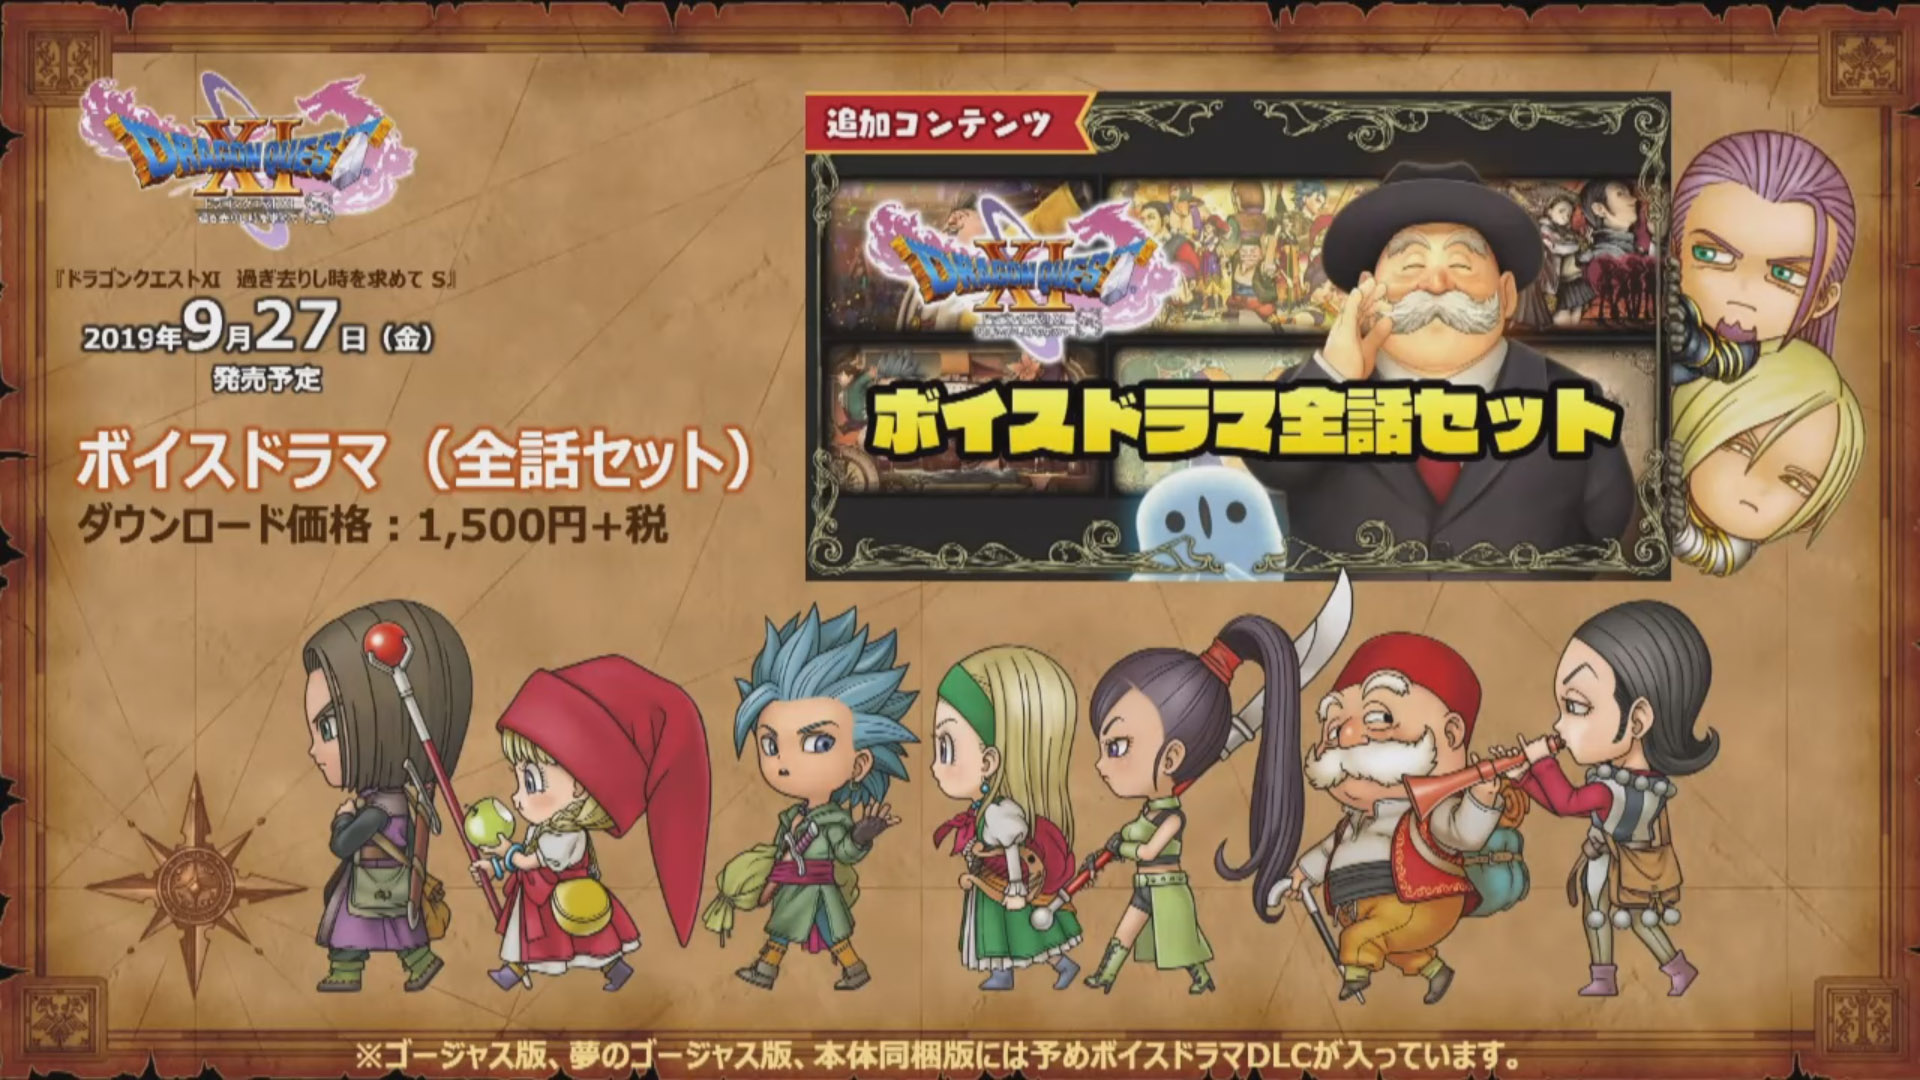 Dragon Quest Xi S List Of Additional Elements And Improvements Dlc Voice Drama And More Detailed Gematsu